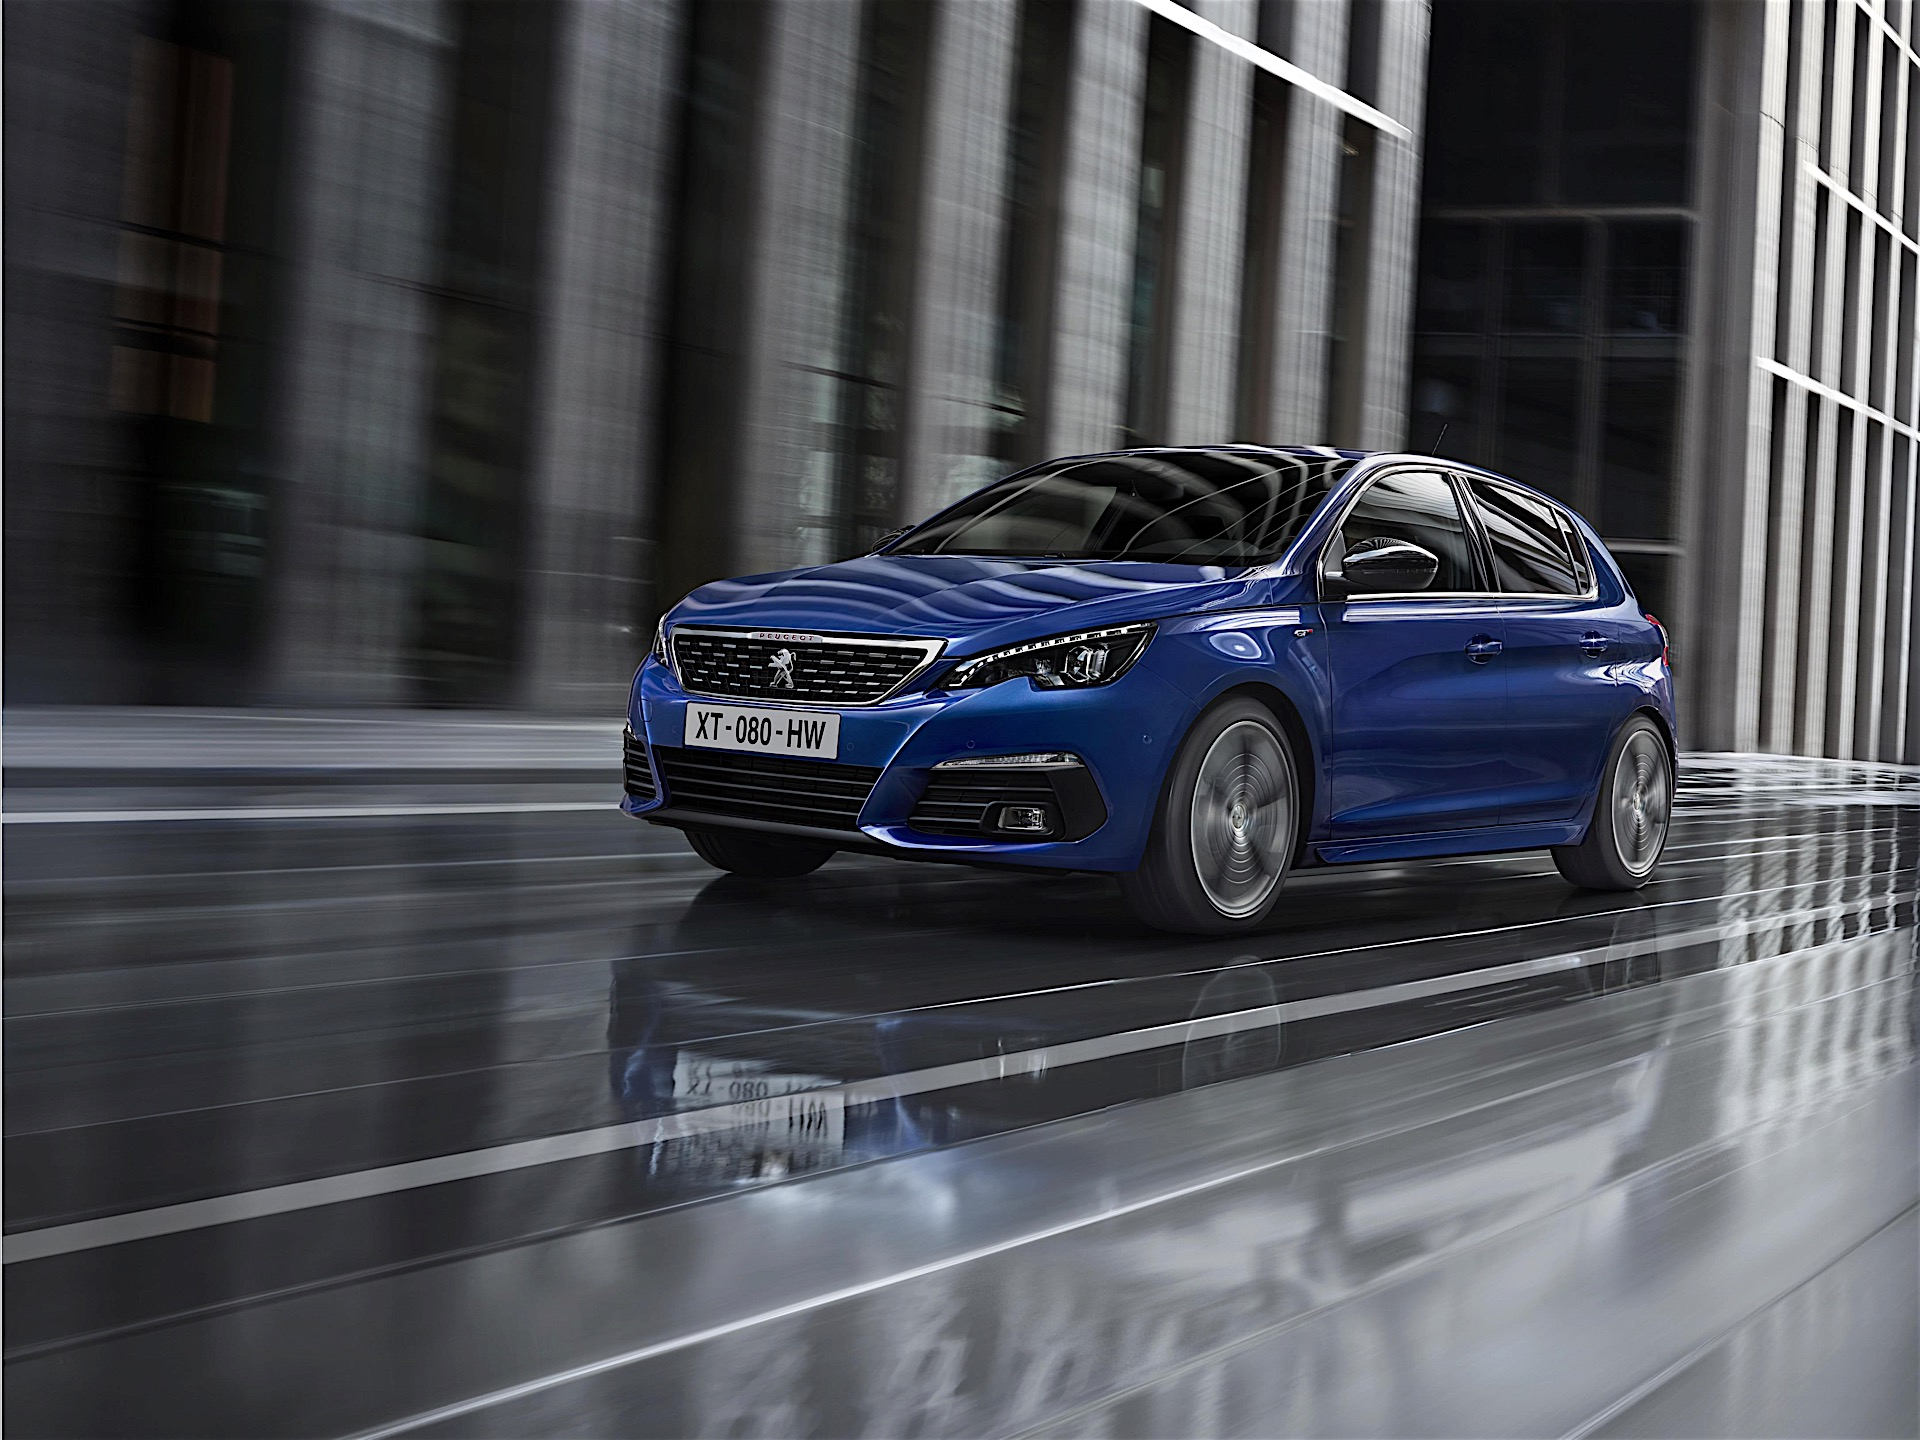 2018 peugeot 308 facelift officially unveiled new engines included autoevolution. Black Bedroom Furniture Sets. Home Design Ideas